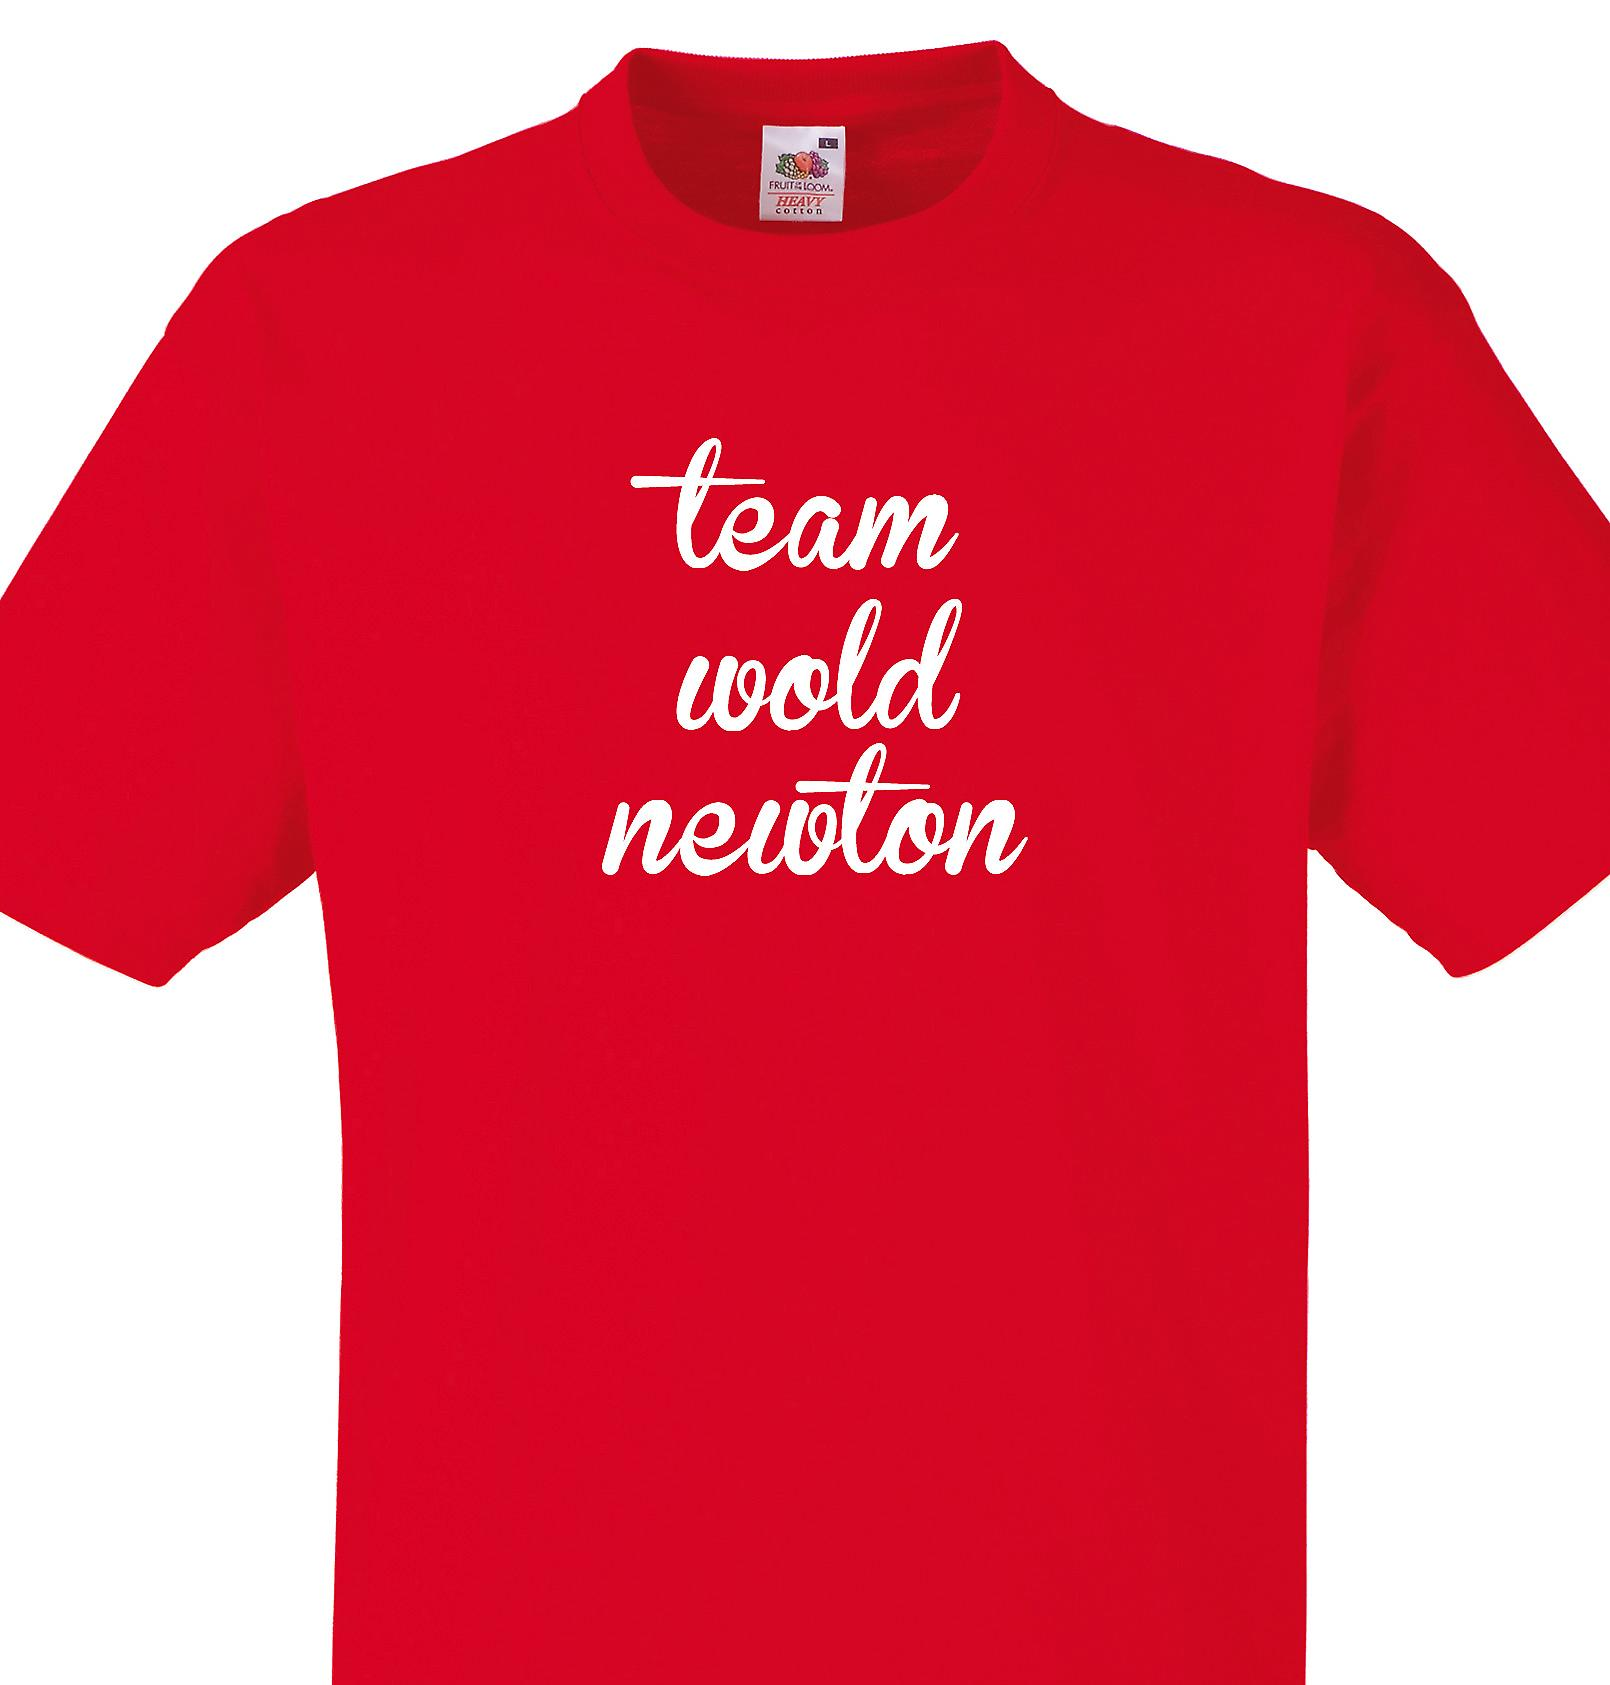 Team Wold newton Red T shirt